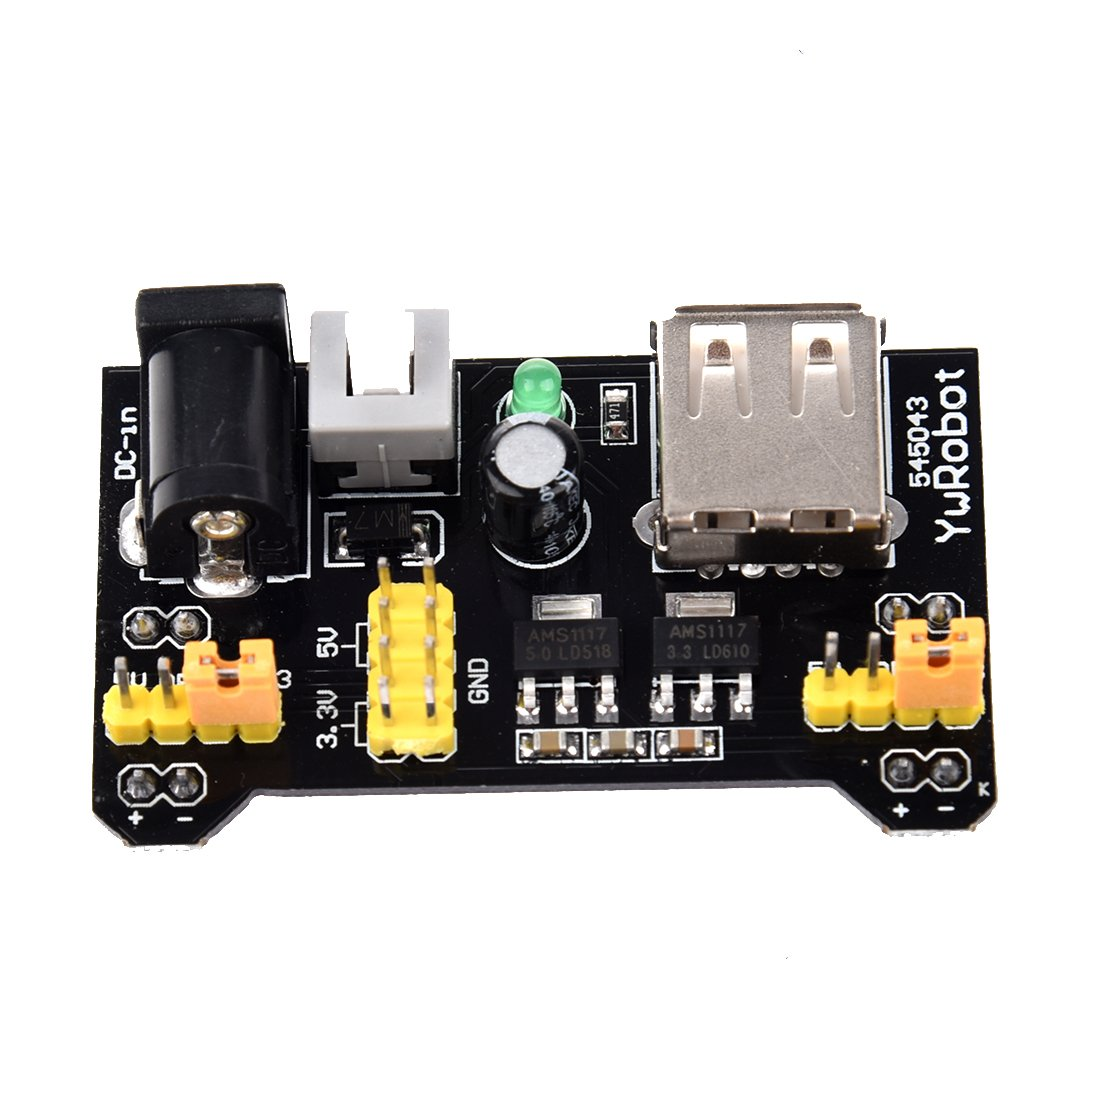 Cheap Power Supply Arduino Find Deals On Line Dc 12v To 5v Converter Circuit Uno Breadboard Get Quotations Sodialr 33v Module